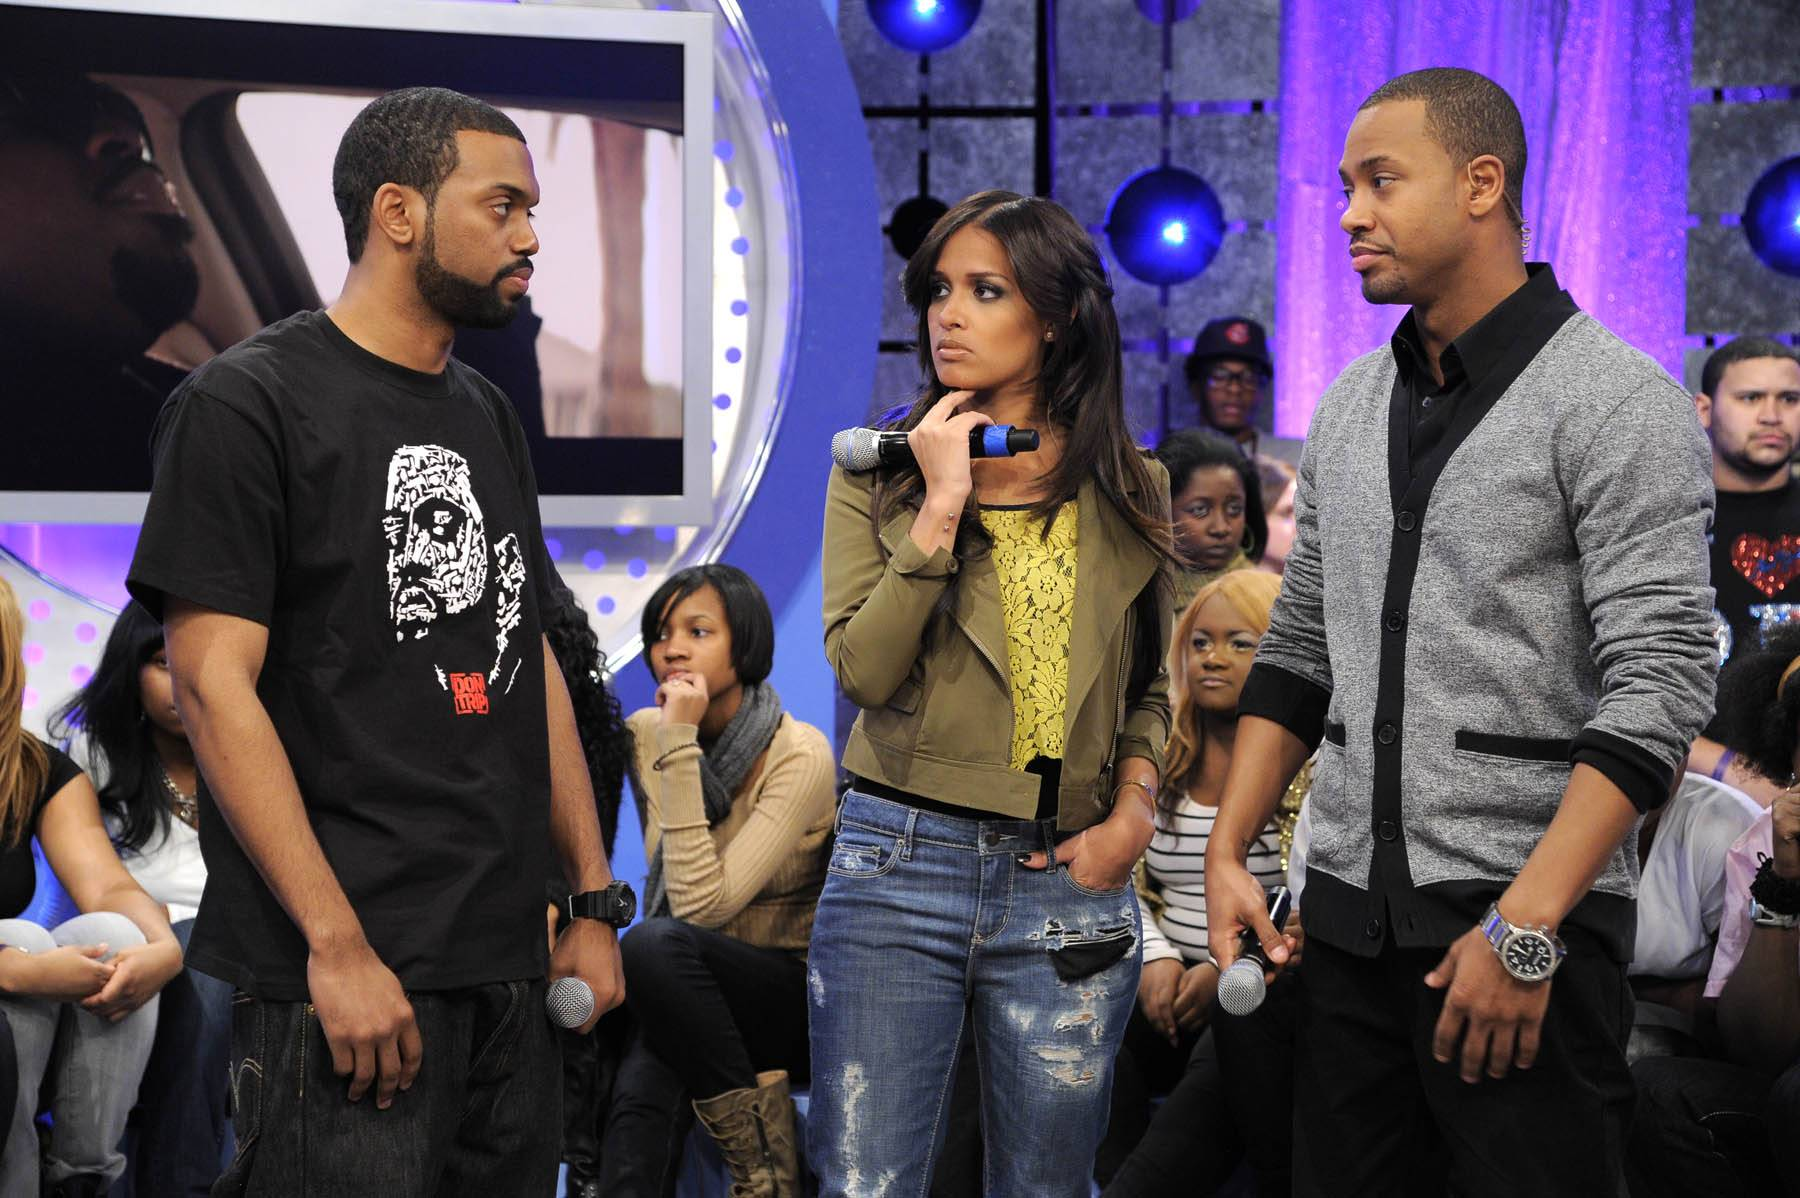 """Speak Out Now - Terrence J and Rocsi Diaz speak with Don Trip about the inspiration for his song, """"Letter to my Son,"""" at 106 & Park, January 30, 2012. (Photo: John Ricard / BET)"""